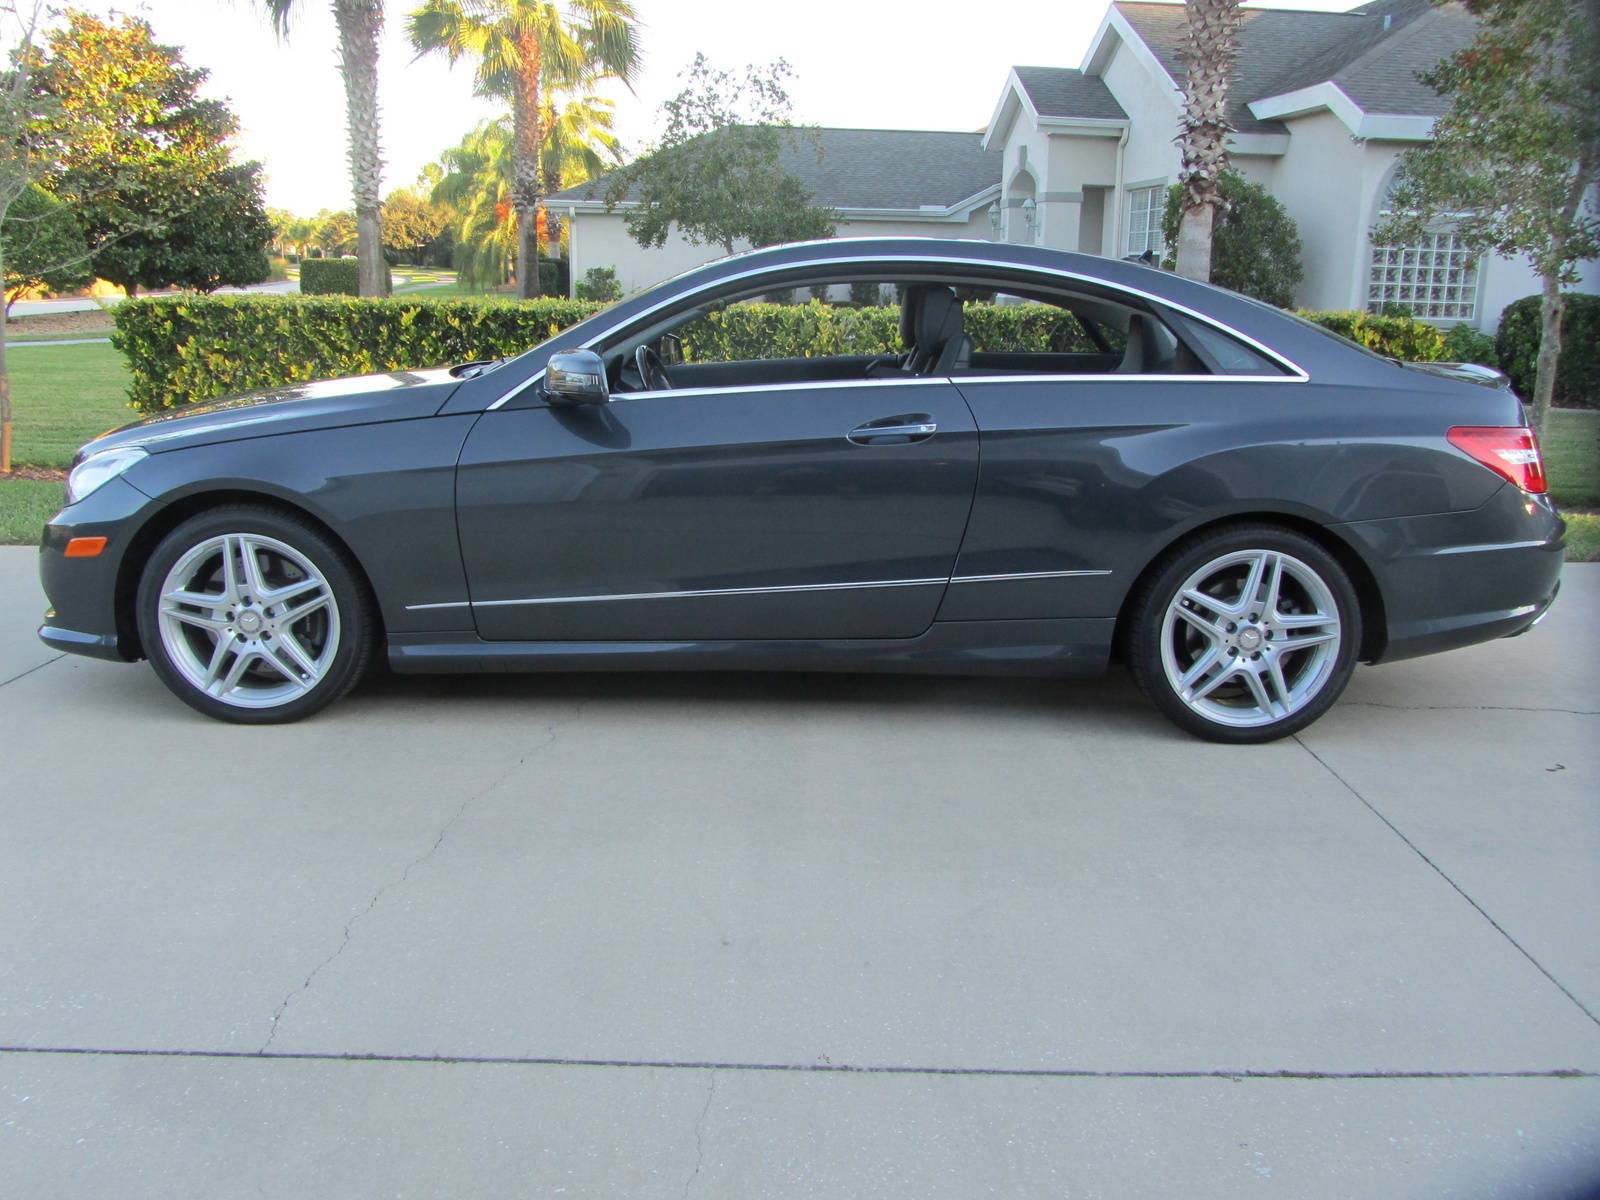 2011 mercedes benz e class pictures cargurus for 2012 mercedes benz e550 coupe review